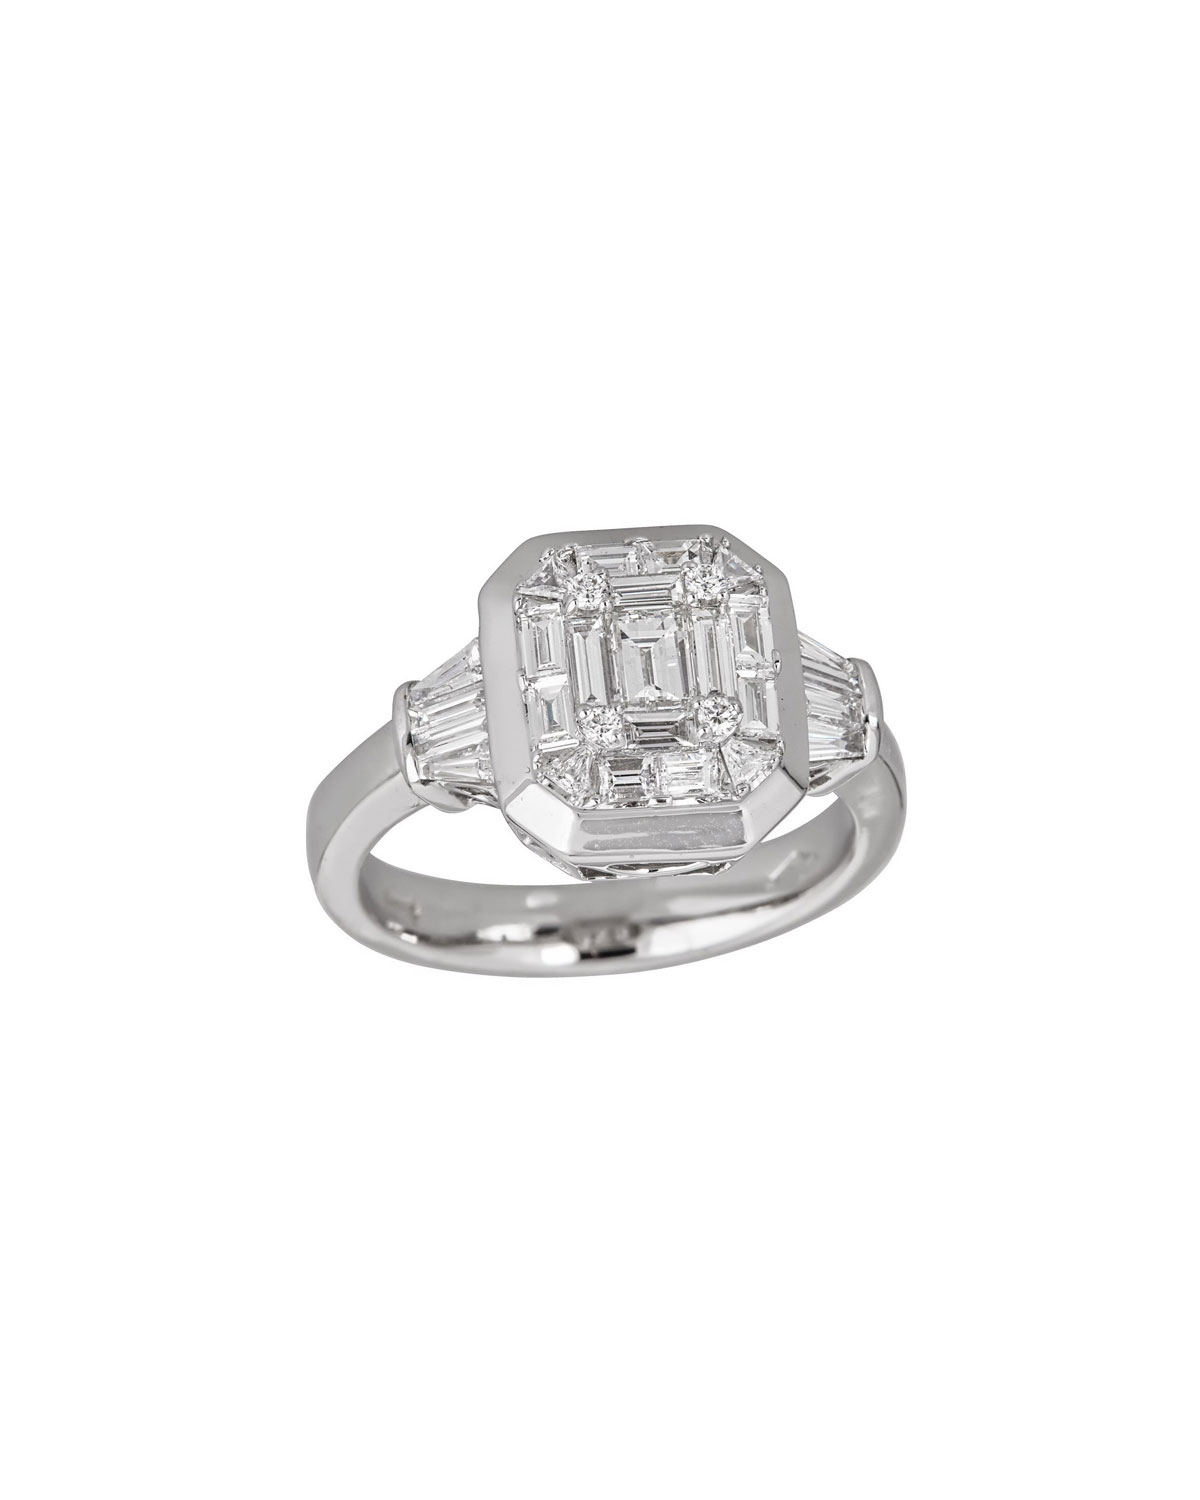 ZYDO Mosaic 18K White Gold Diamond Octagonal Ring, Size 6.5